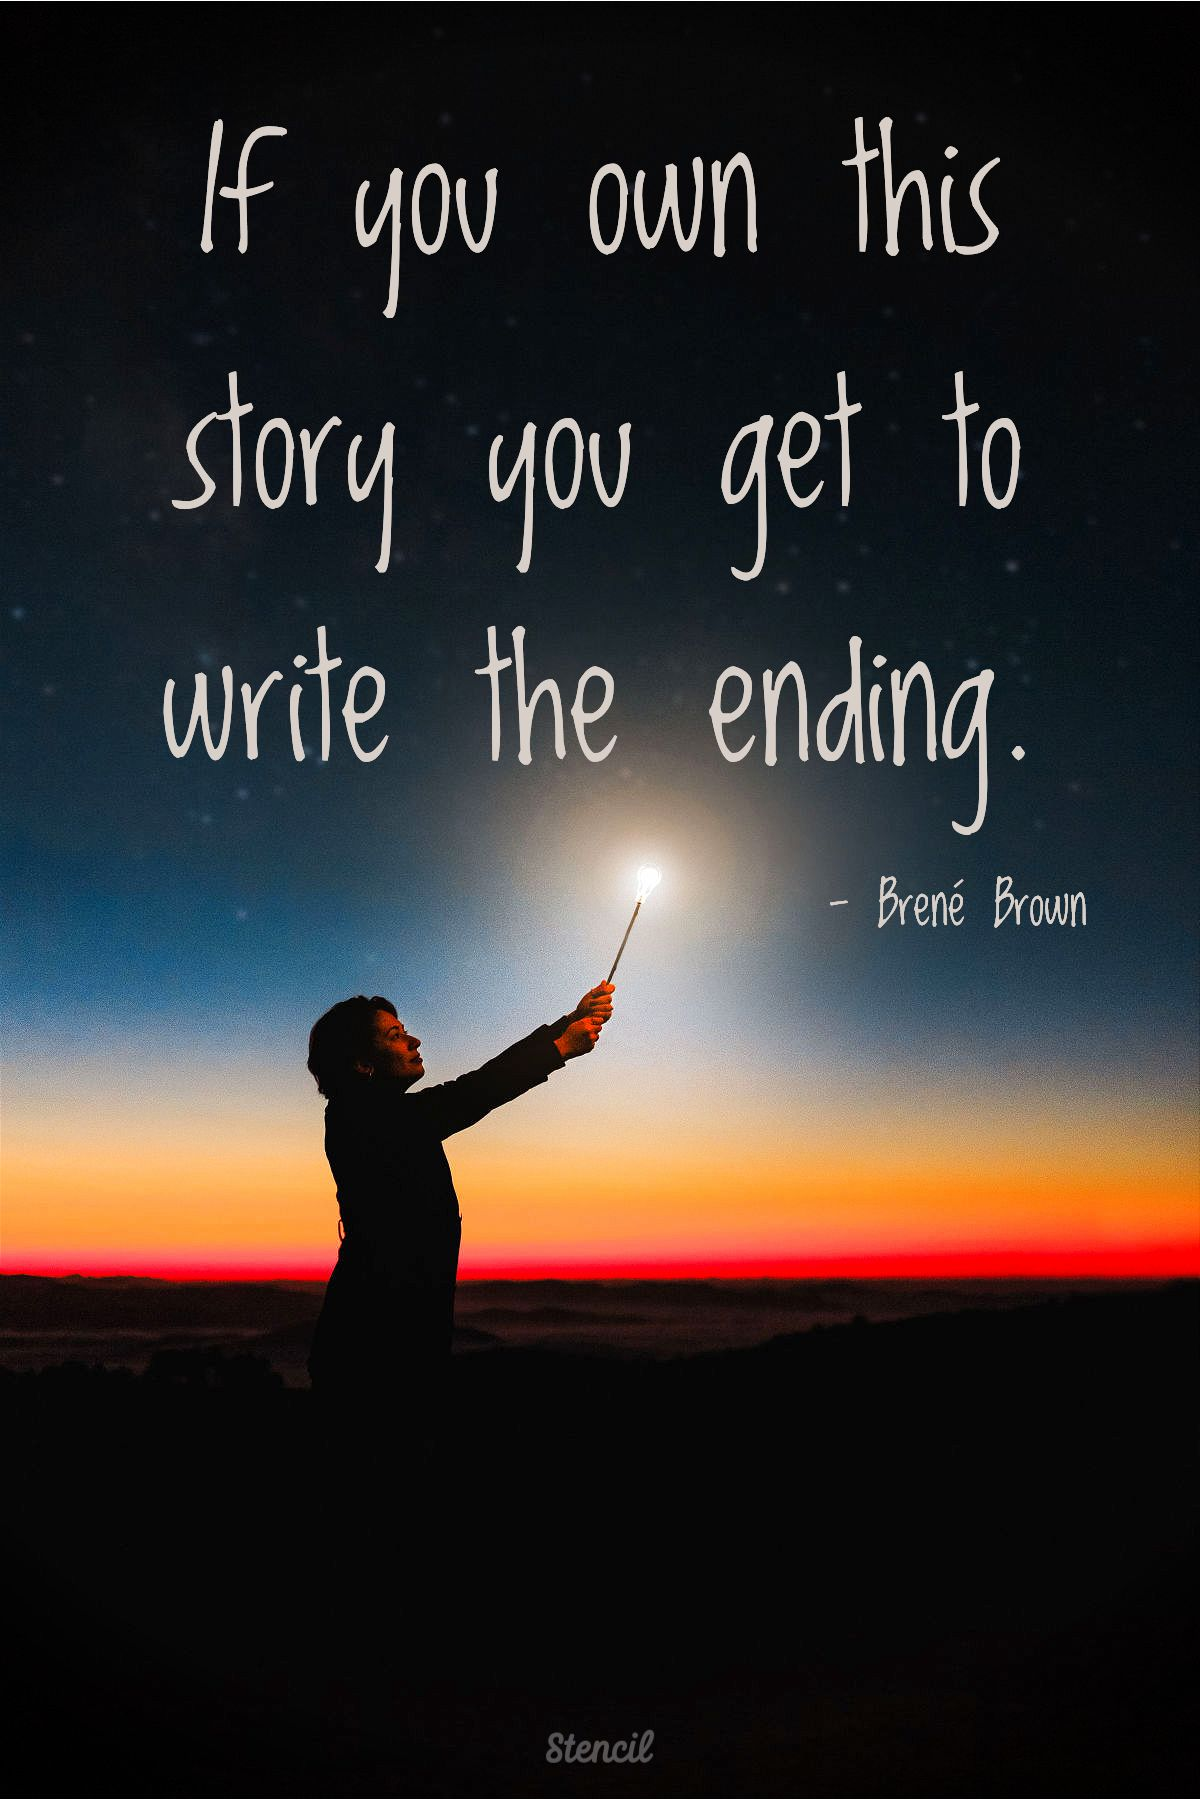 If you own this story you get to write the ending. Brené